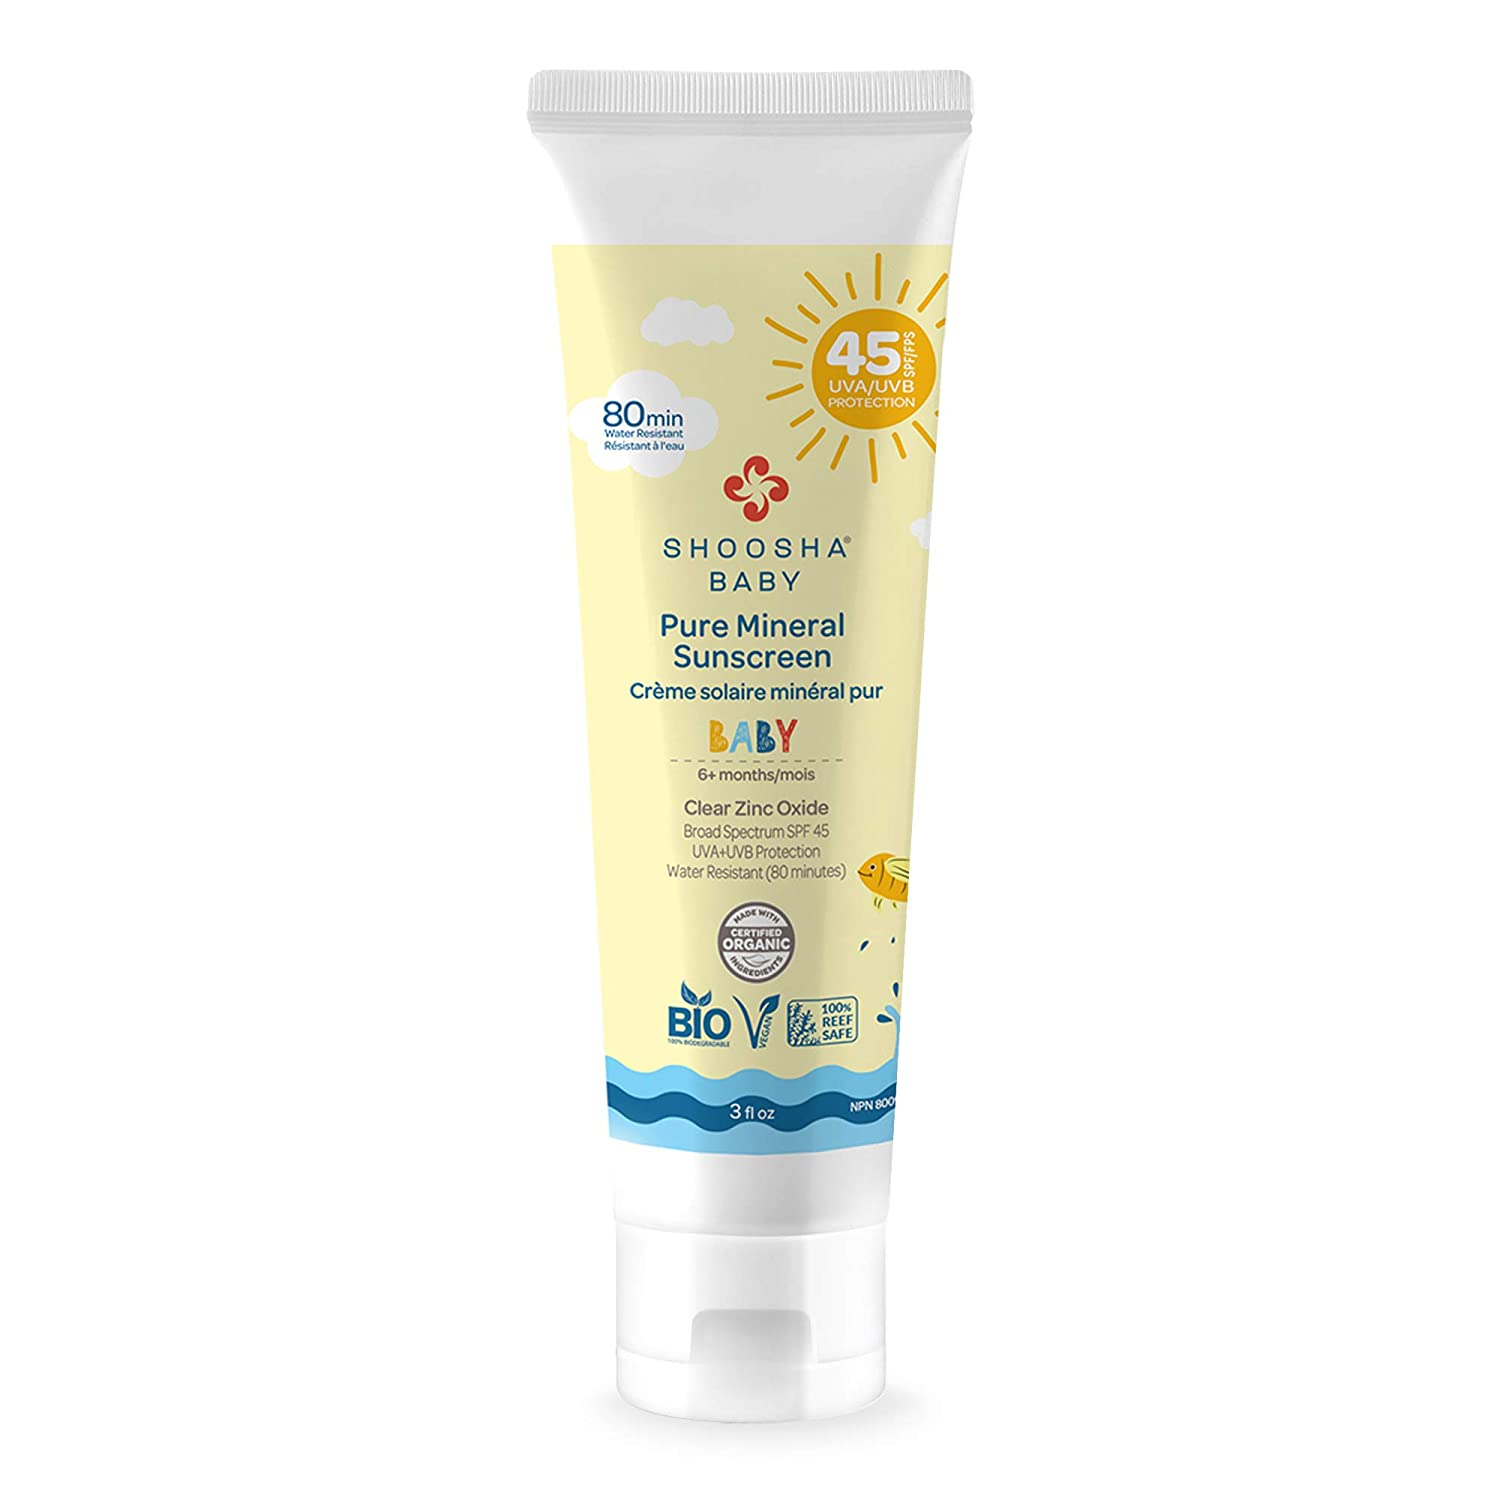 Organic Sunscreen for Kids and Babies, Sunscreen Lotion for Kids, Pure Mineral Sunscreen, Gluten-Free, Fragrance-Free, Hypoallergenic, 100% Biodegradable - Shoosha (BABY)